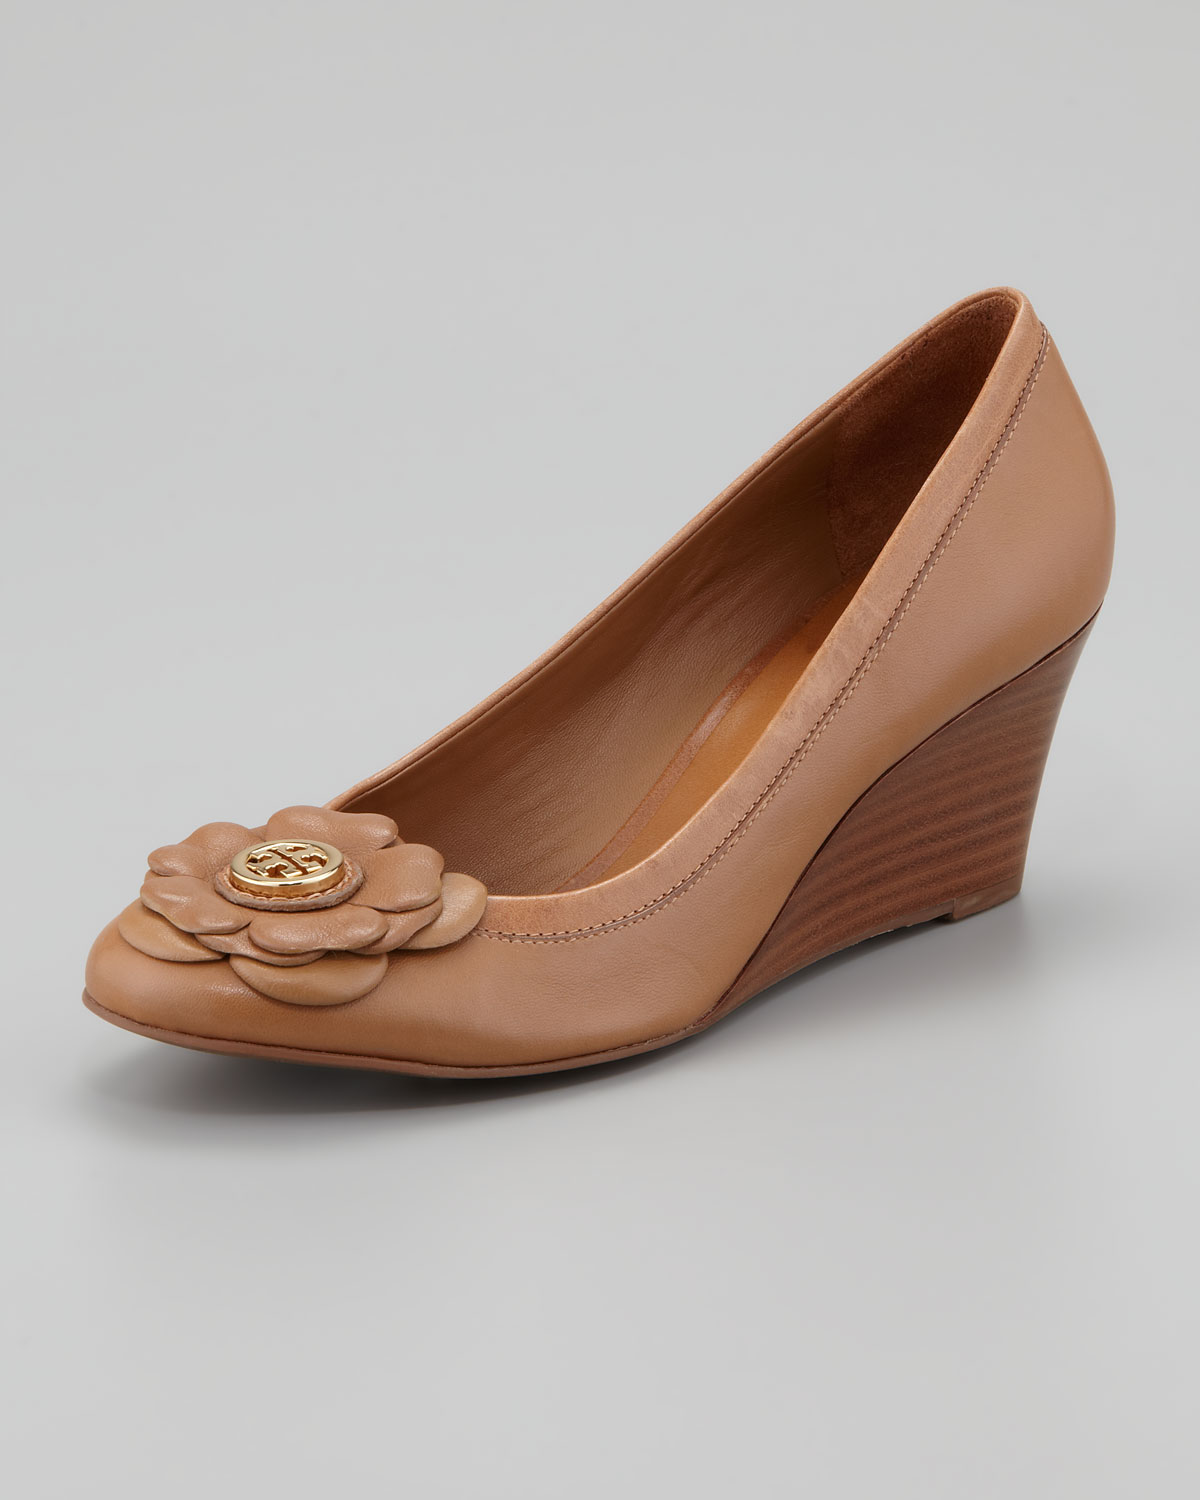 eab5f662c0a7fb Lyst - Tory Burch Shelby Floral Logo Wedge Sand in Brown